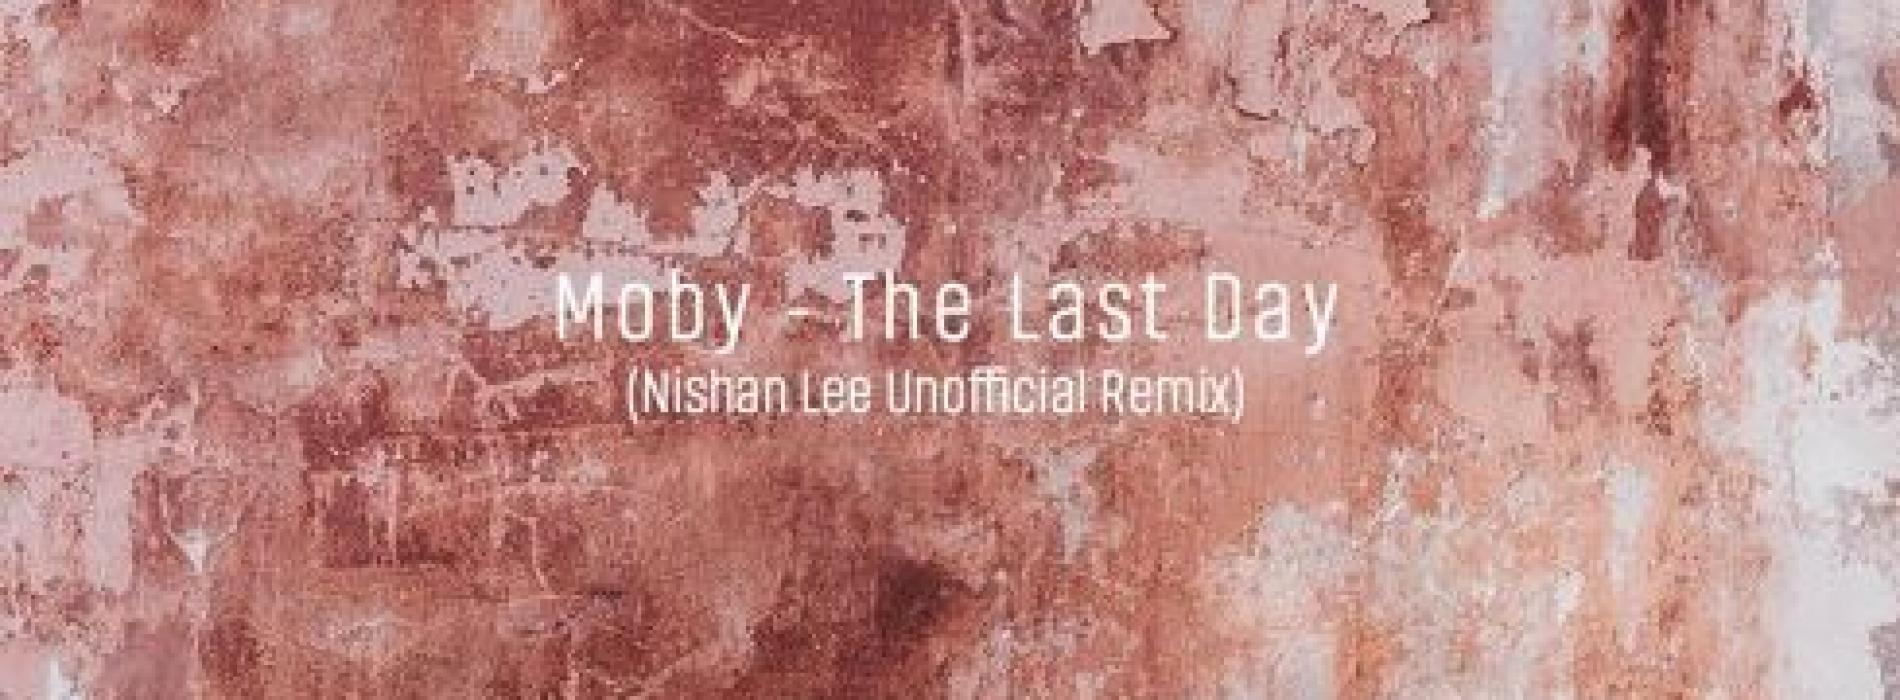 Moby – The Last Day (Nishan Lee Unofficial Remix) [Free Download]